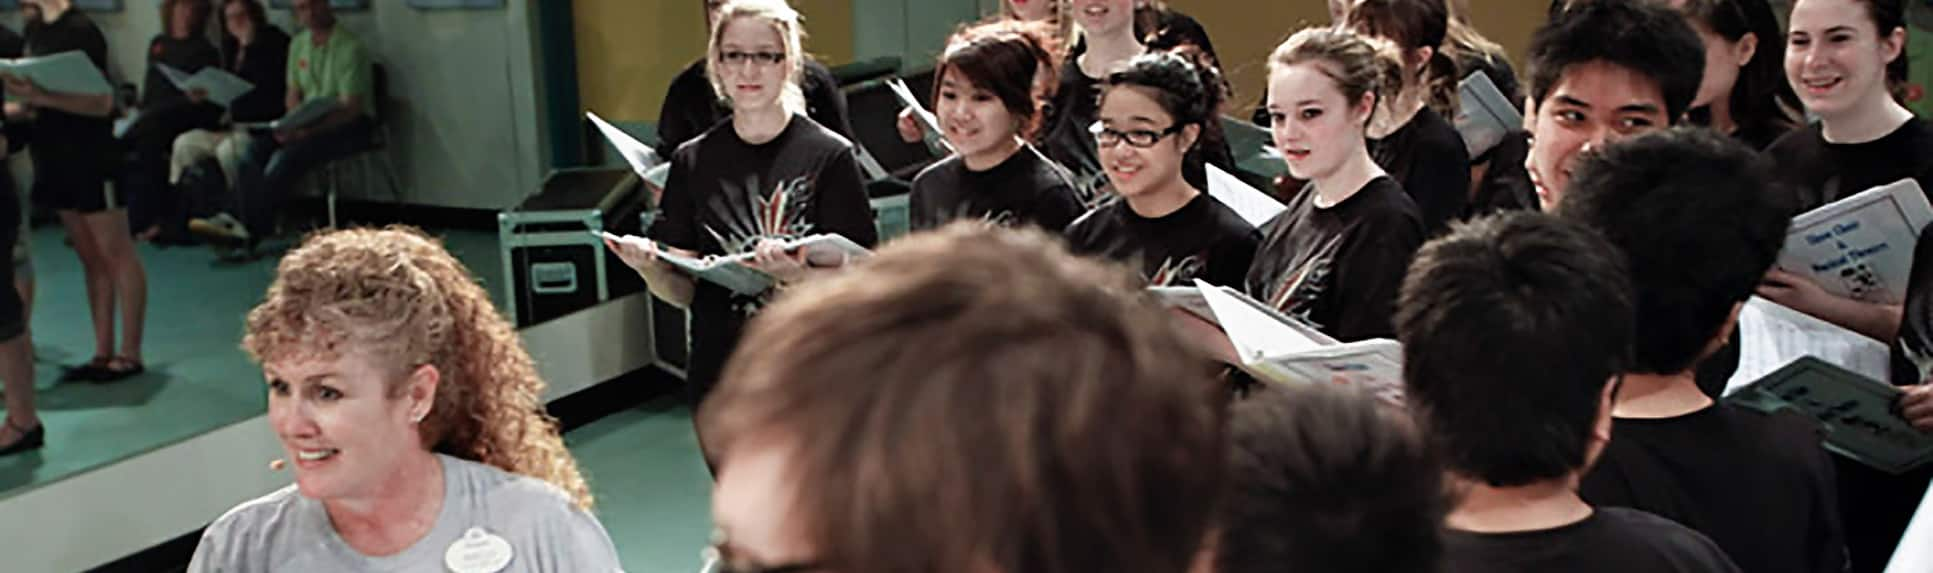 A Cast Member facing young adults holding binders